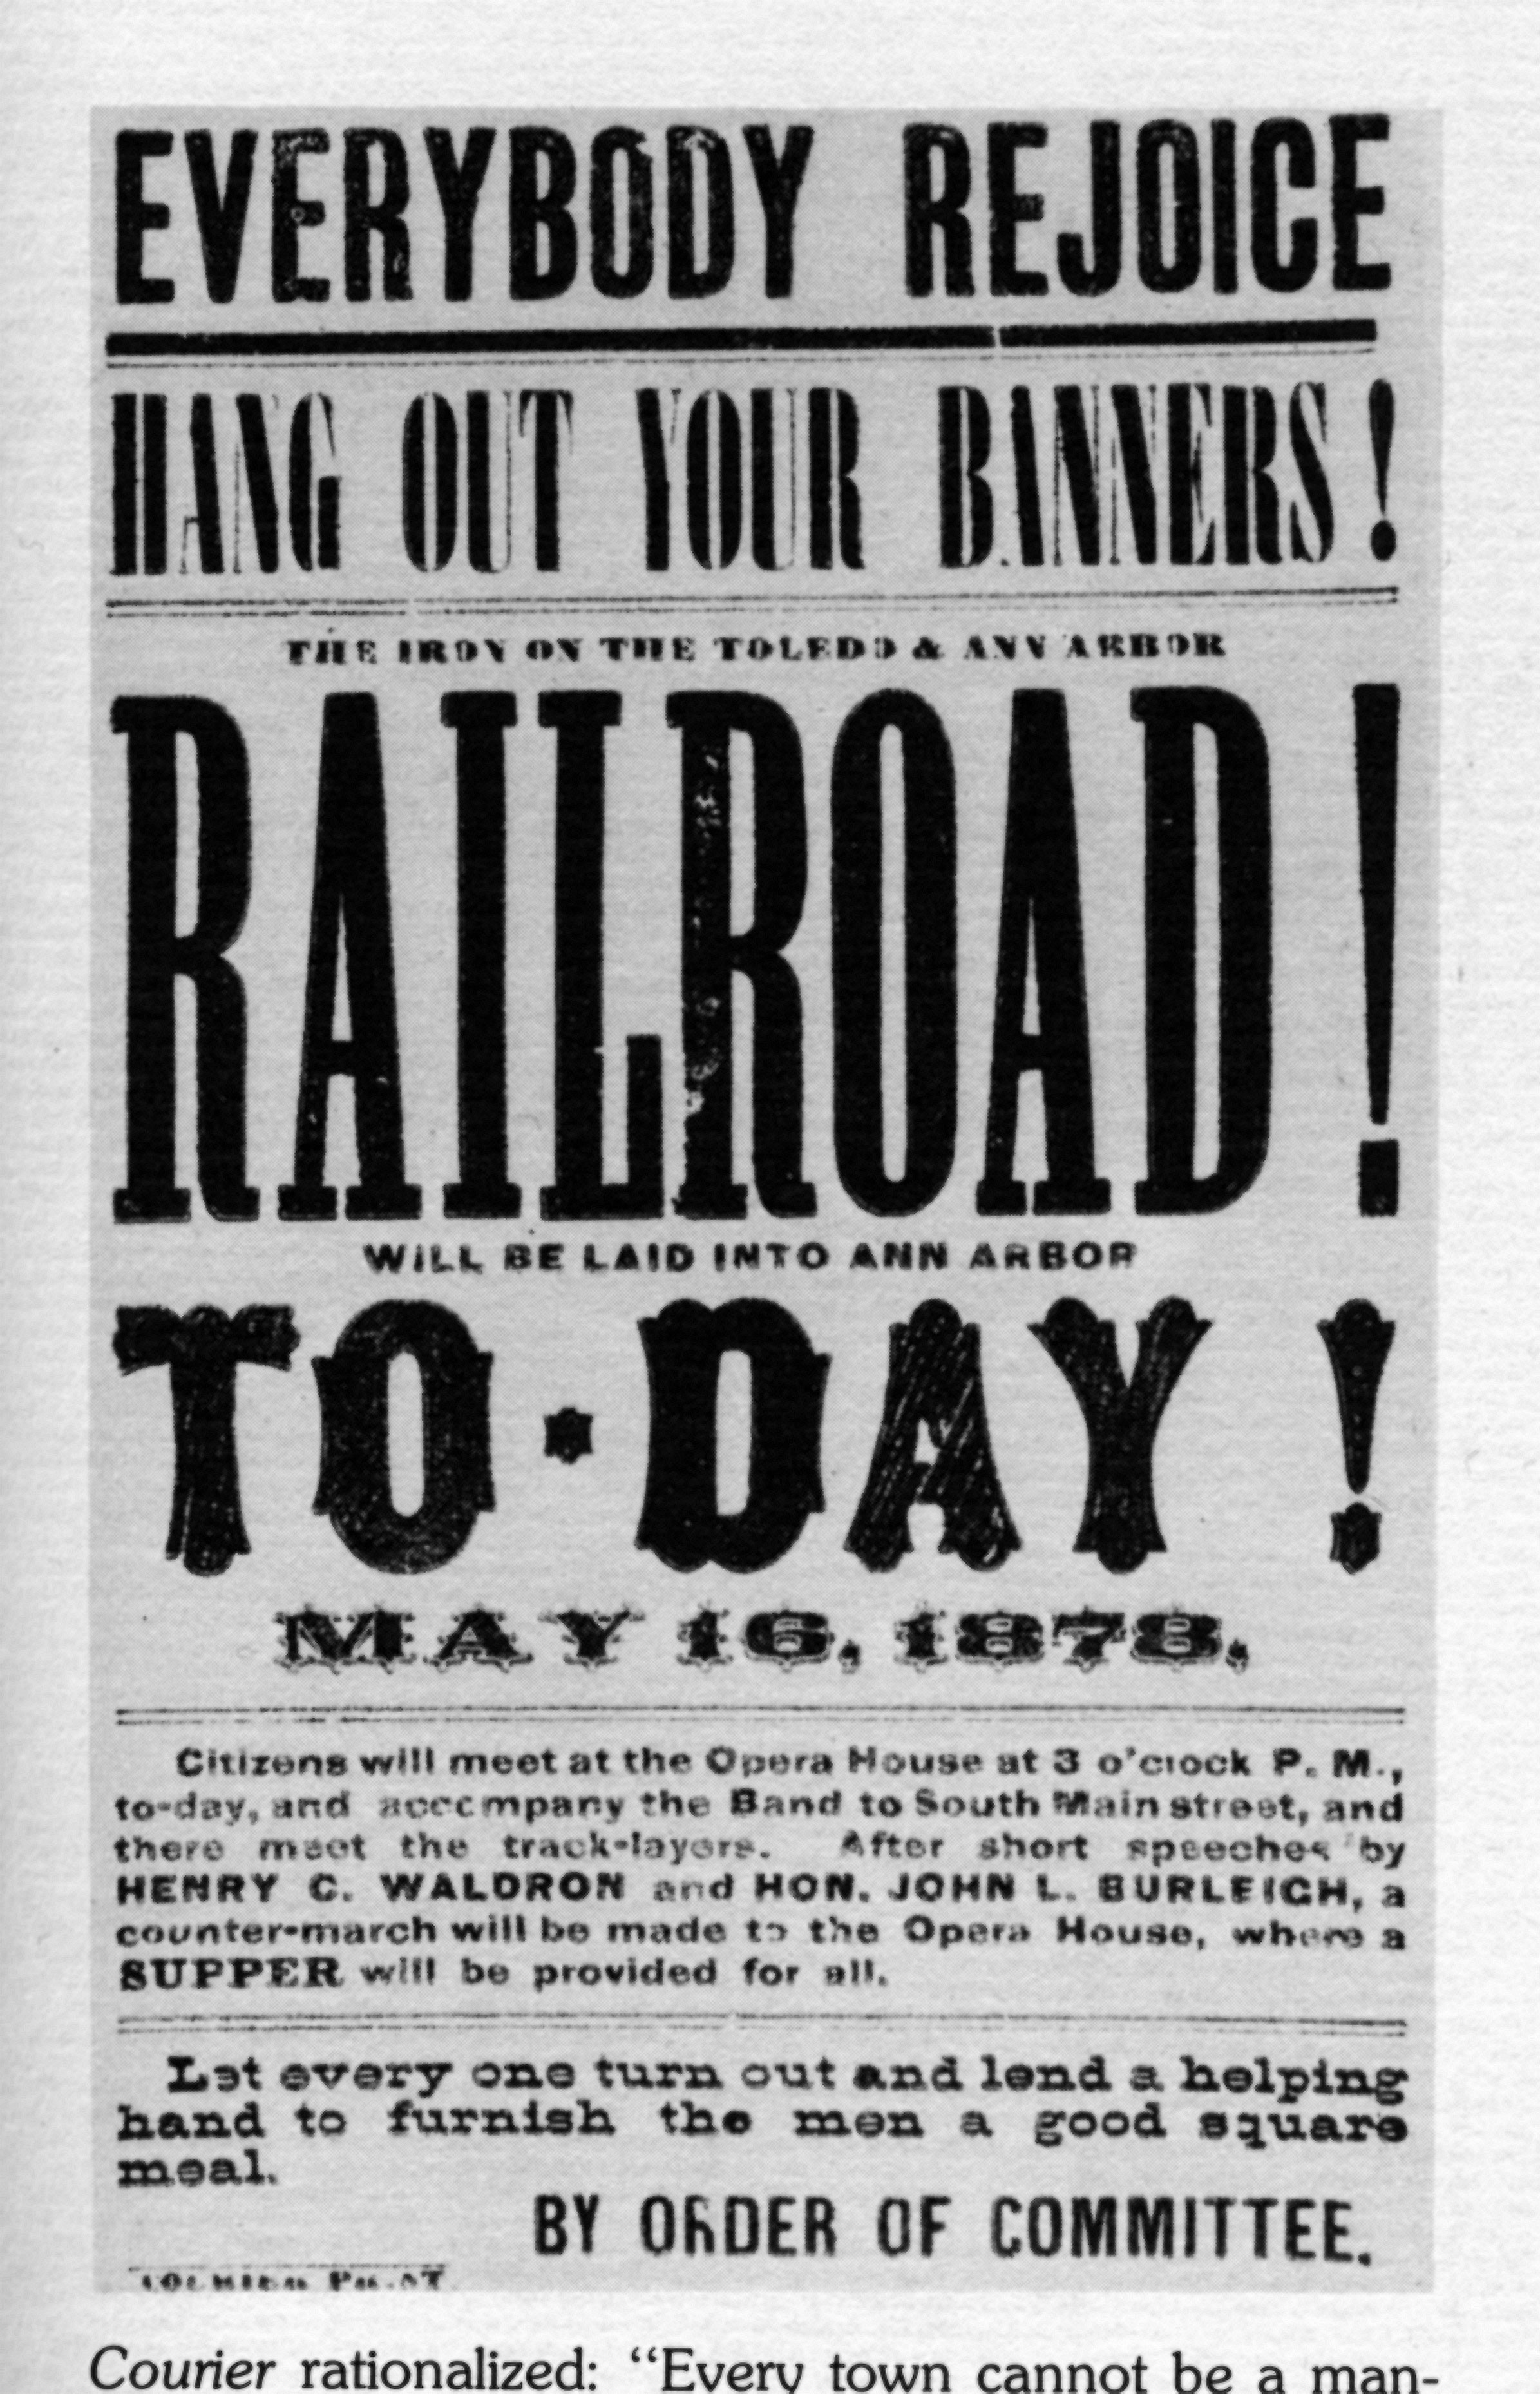 Railroad broadside image